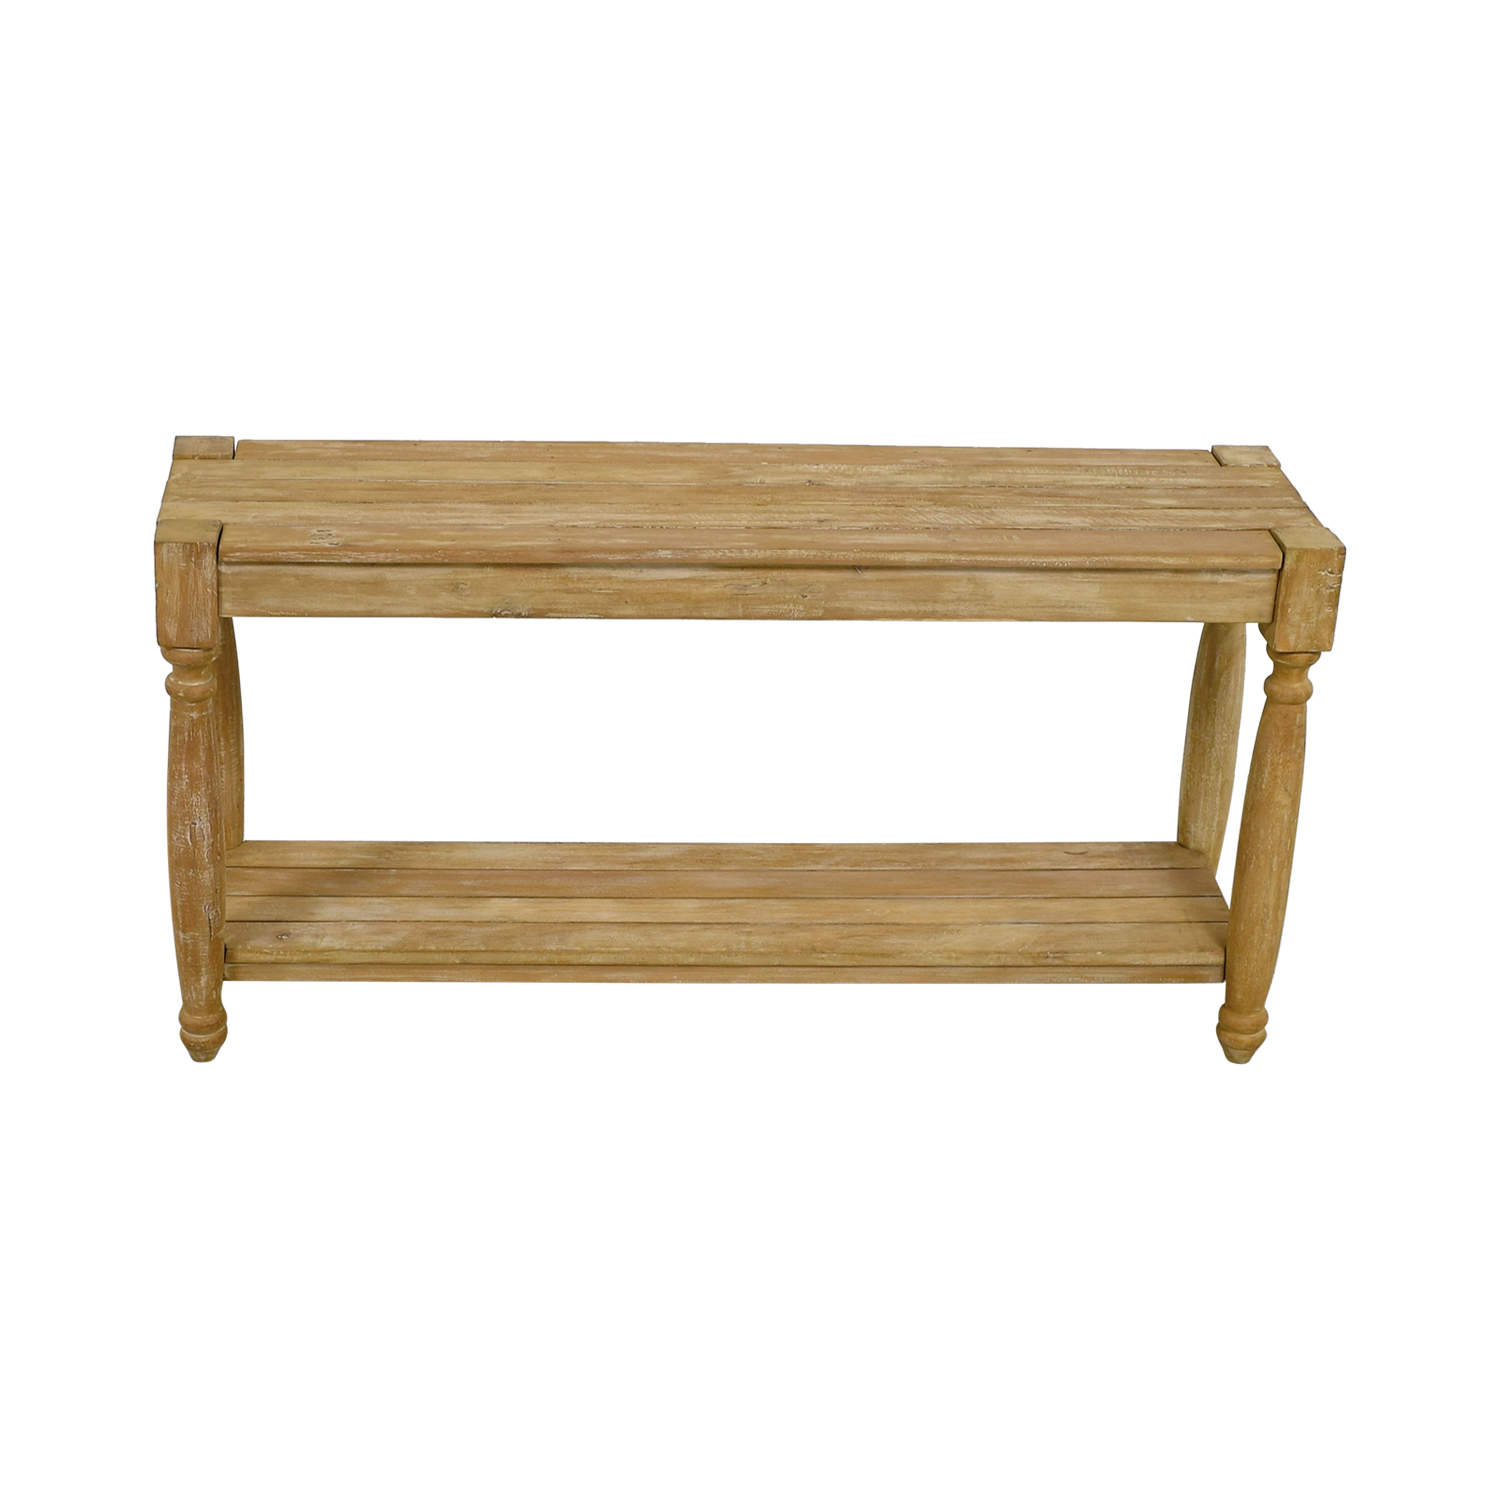 wholesale dealer e47bb bbca1 77% OFF - HomeGoods HomeGoods Natural Wood Console Table / Tables